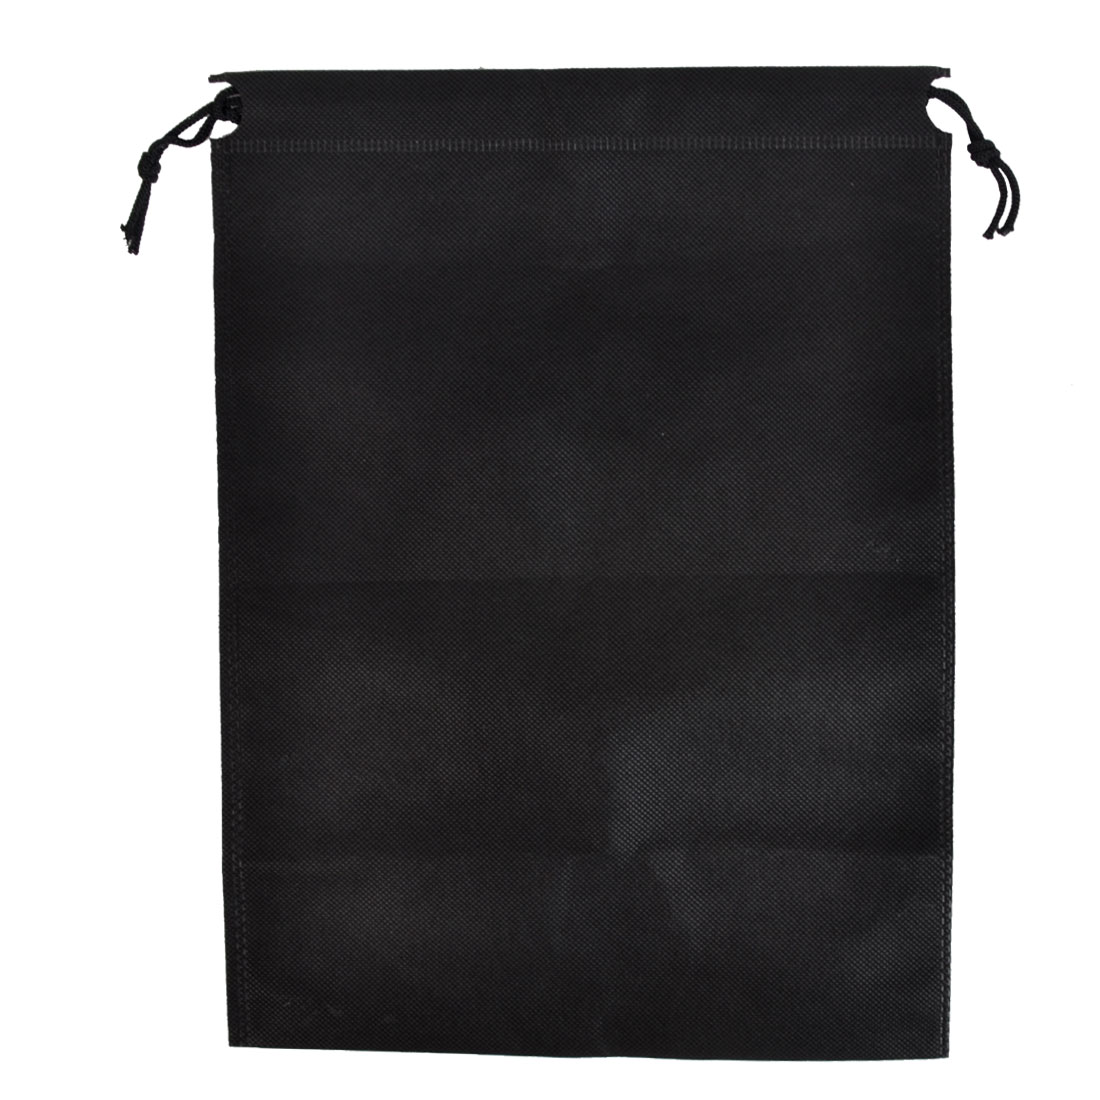 Clothes Dust Cover Storage Travel Drawstring Bags 34 x 25cm Black